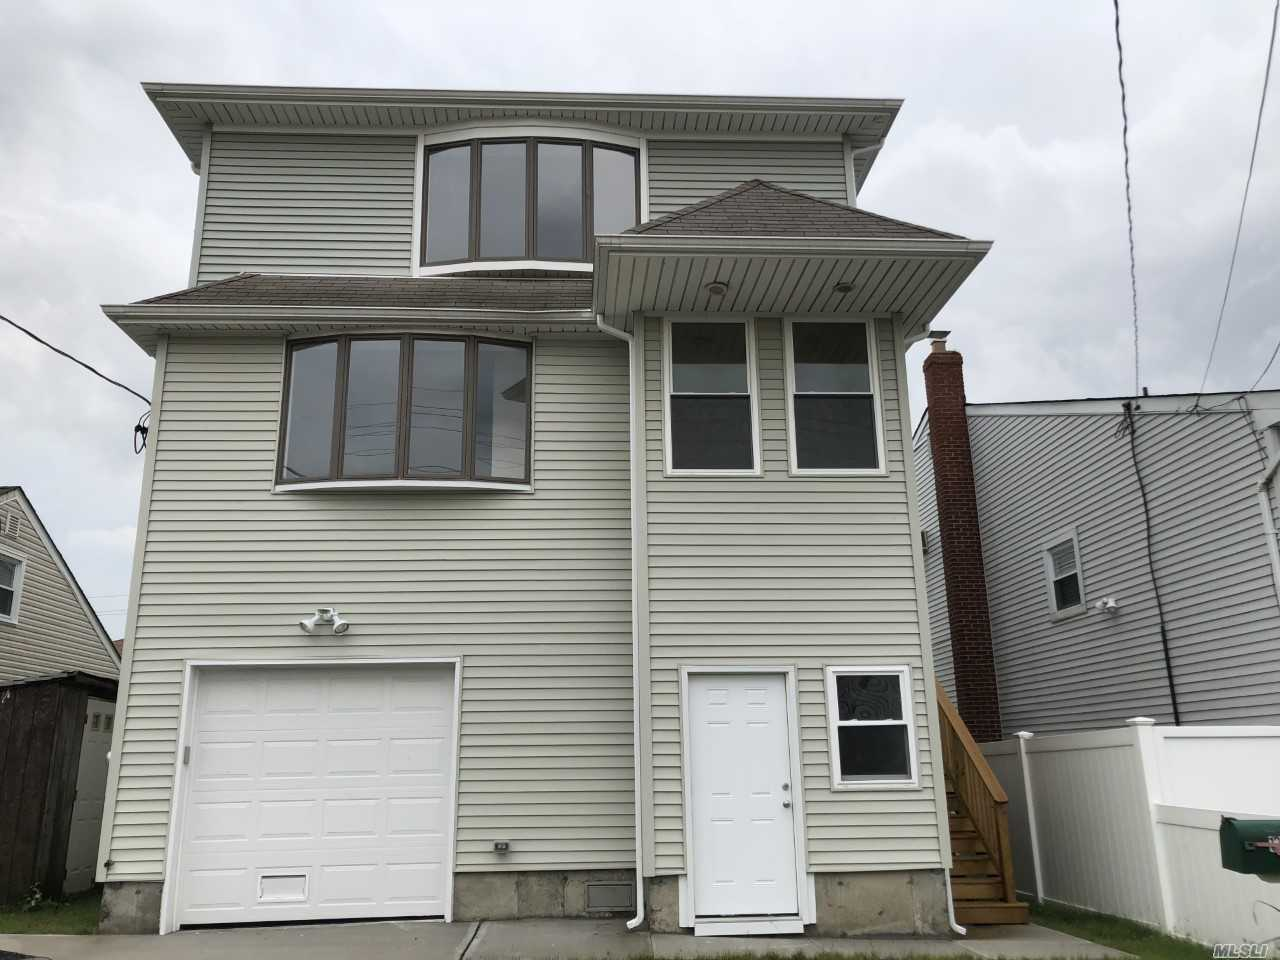 131 Waterford Rd - Island Park, New York